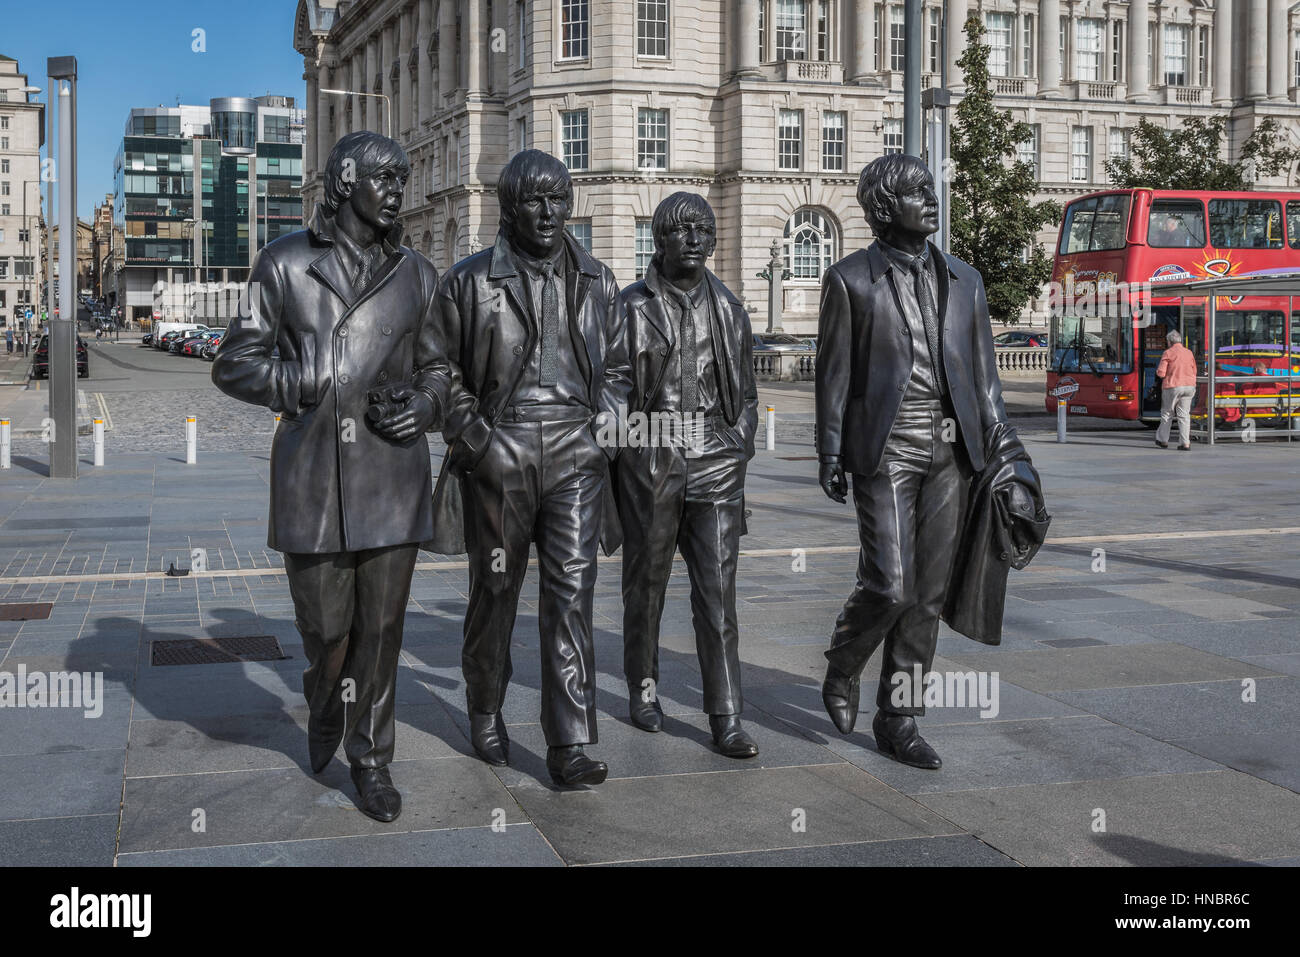 The Beatles statue, Pier Head, Liverpool, UK - Stock Image